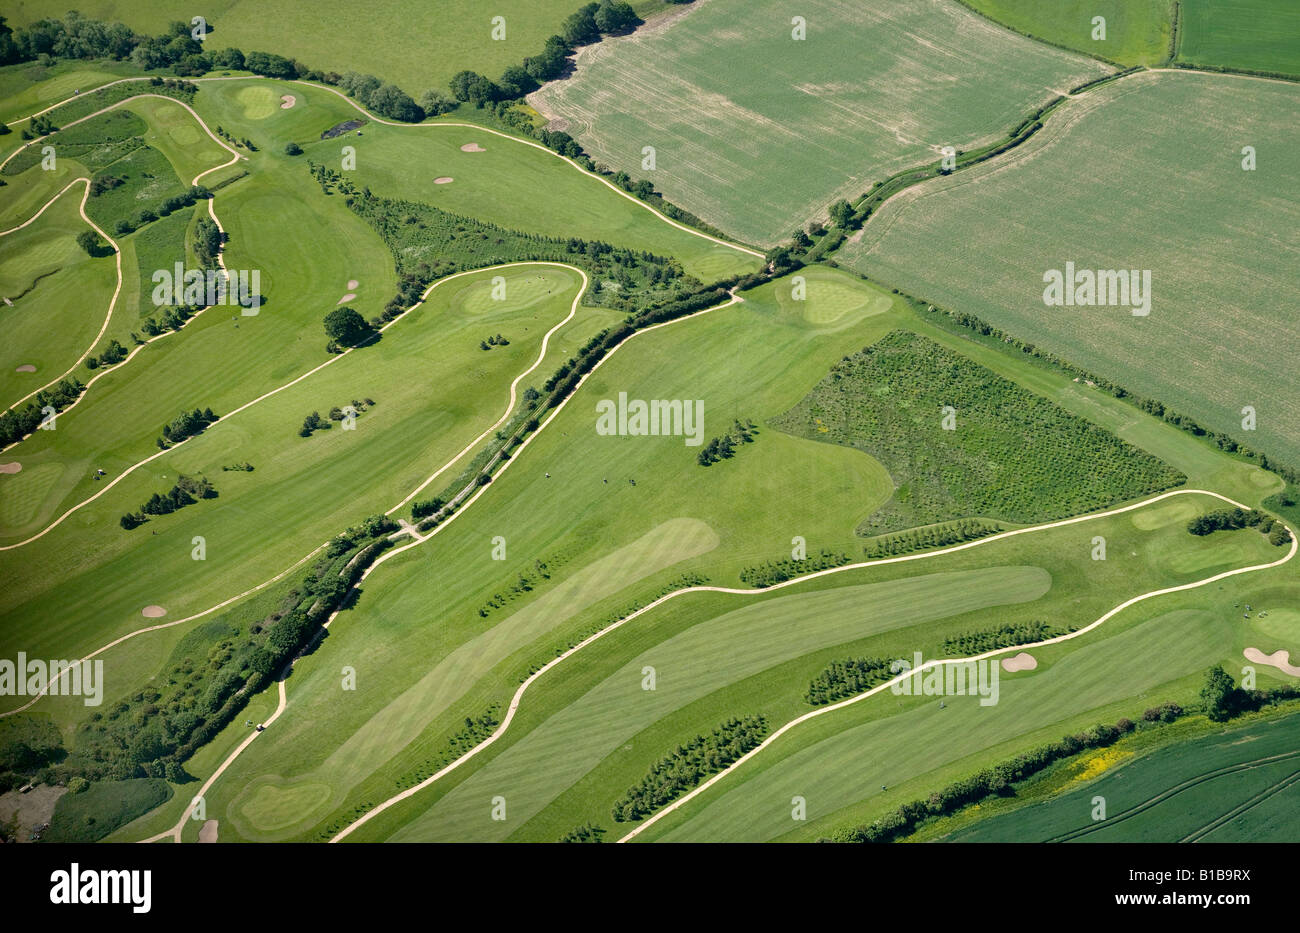 Golf Course from the Air, North Leeds, West Yorkshire, Northern England - Stock Image